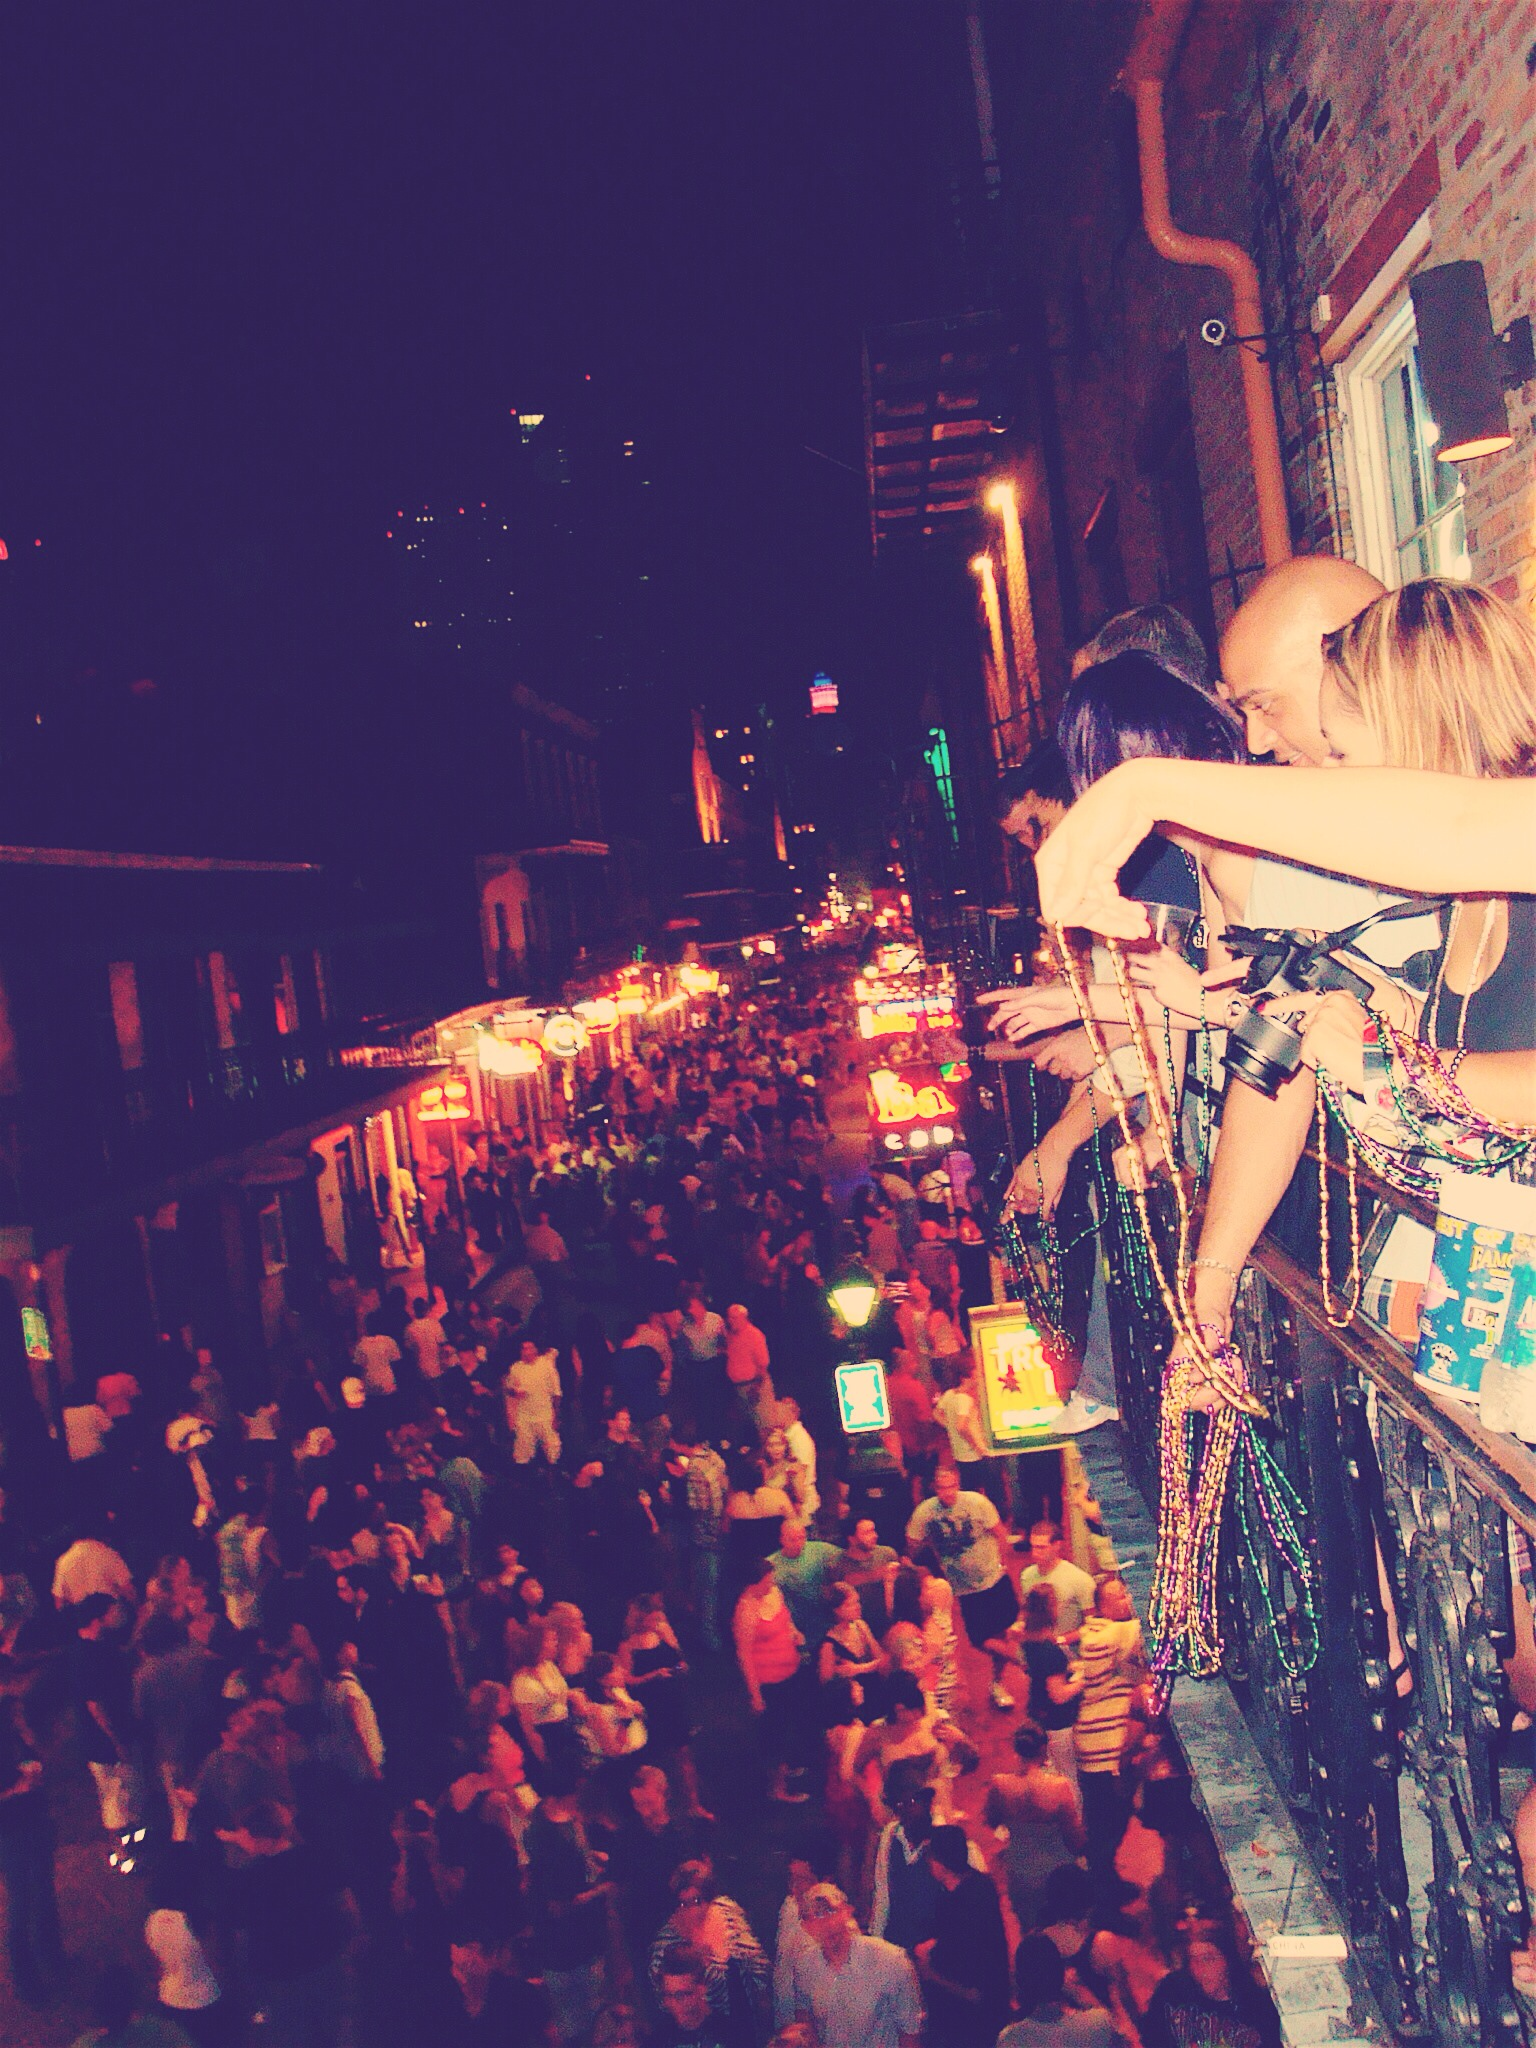 Beads for Mardis Gras on Bourbon Street, New orleans